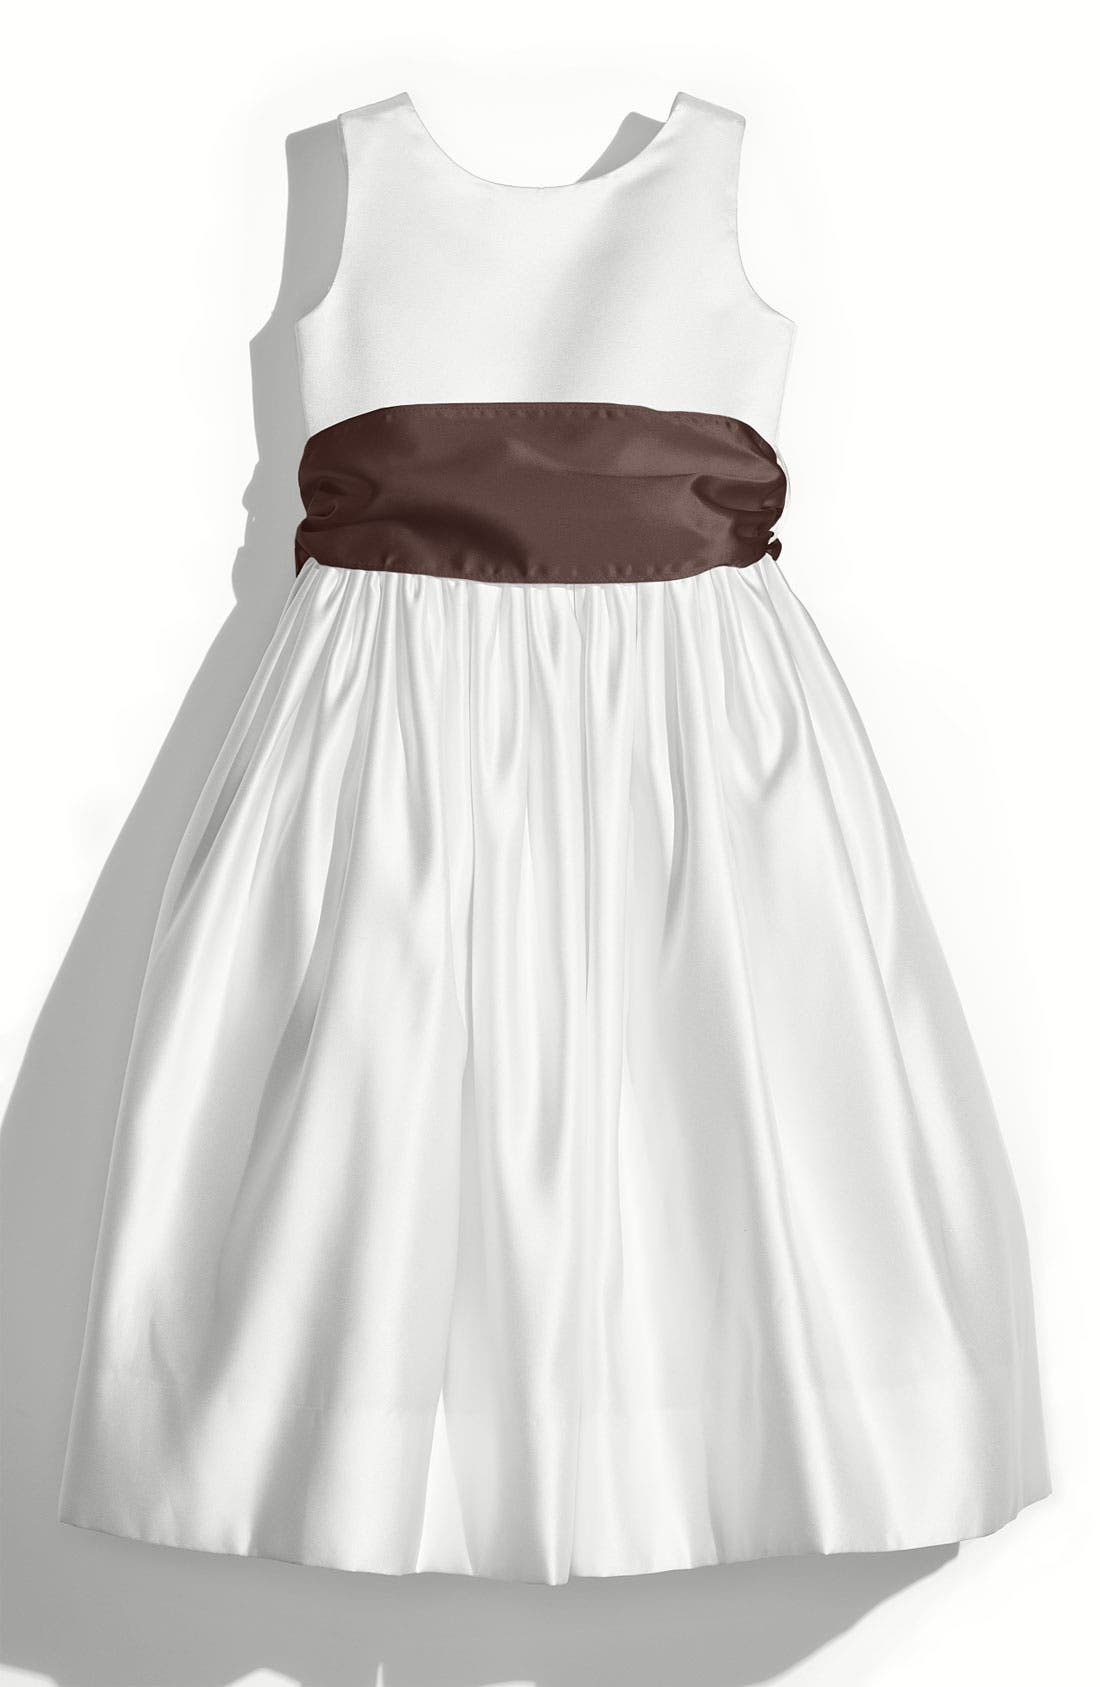 Us Angels White Tank Dress with Satin Sash (Toddler, Little Girls & Big Girls)